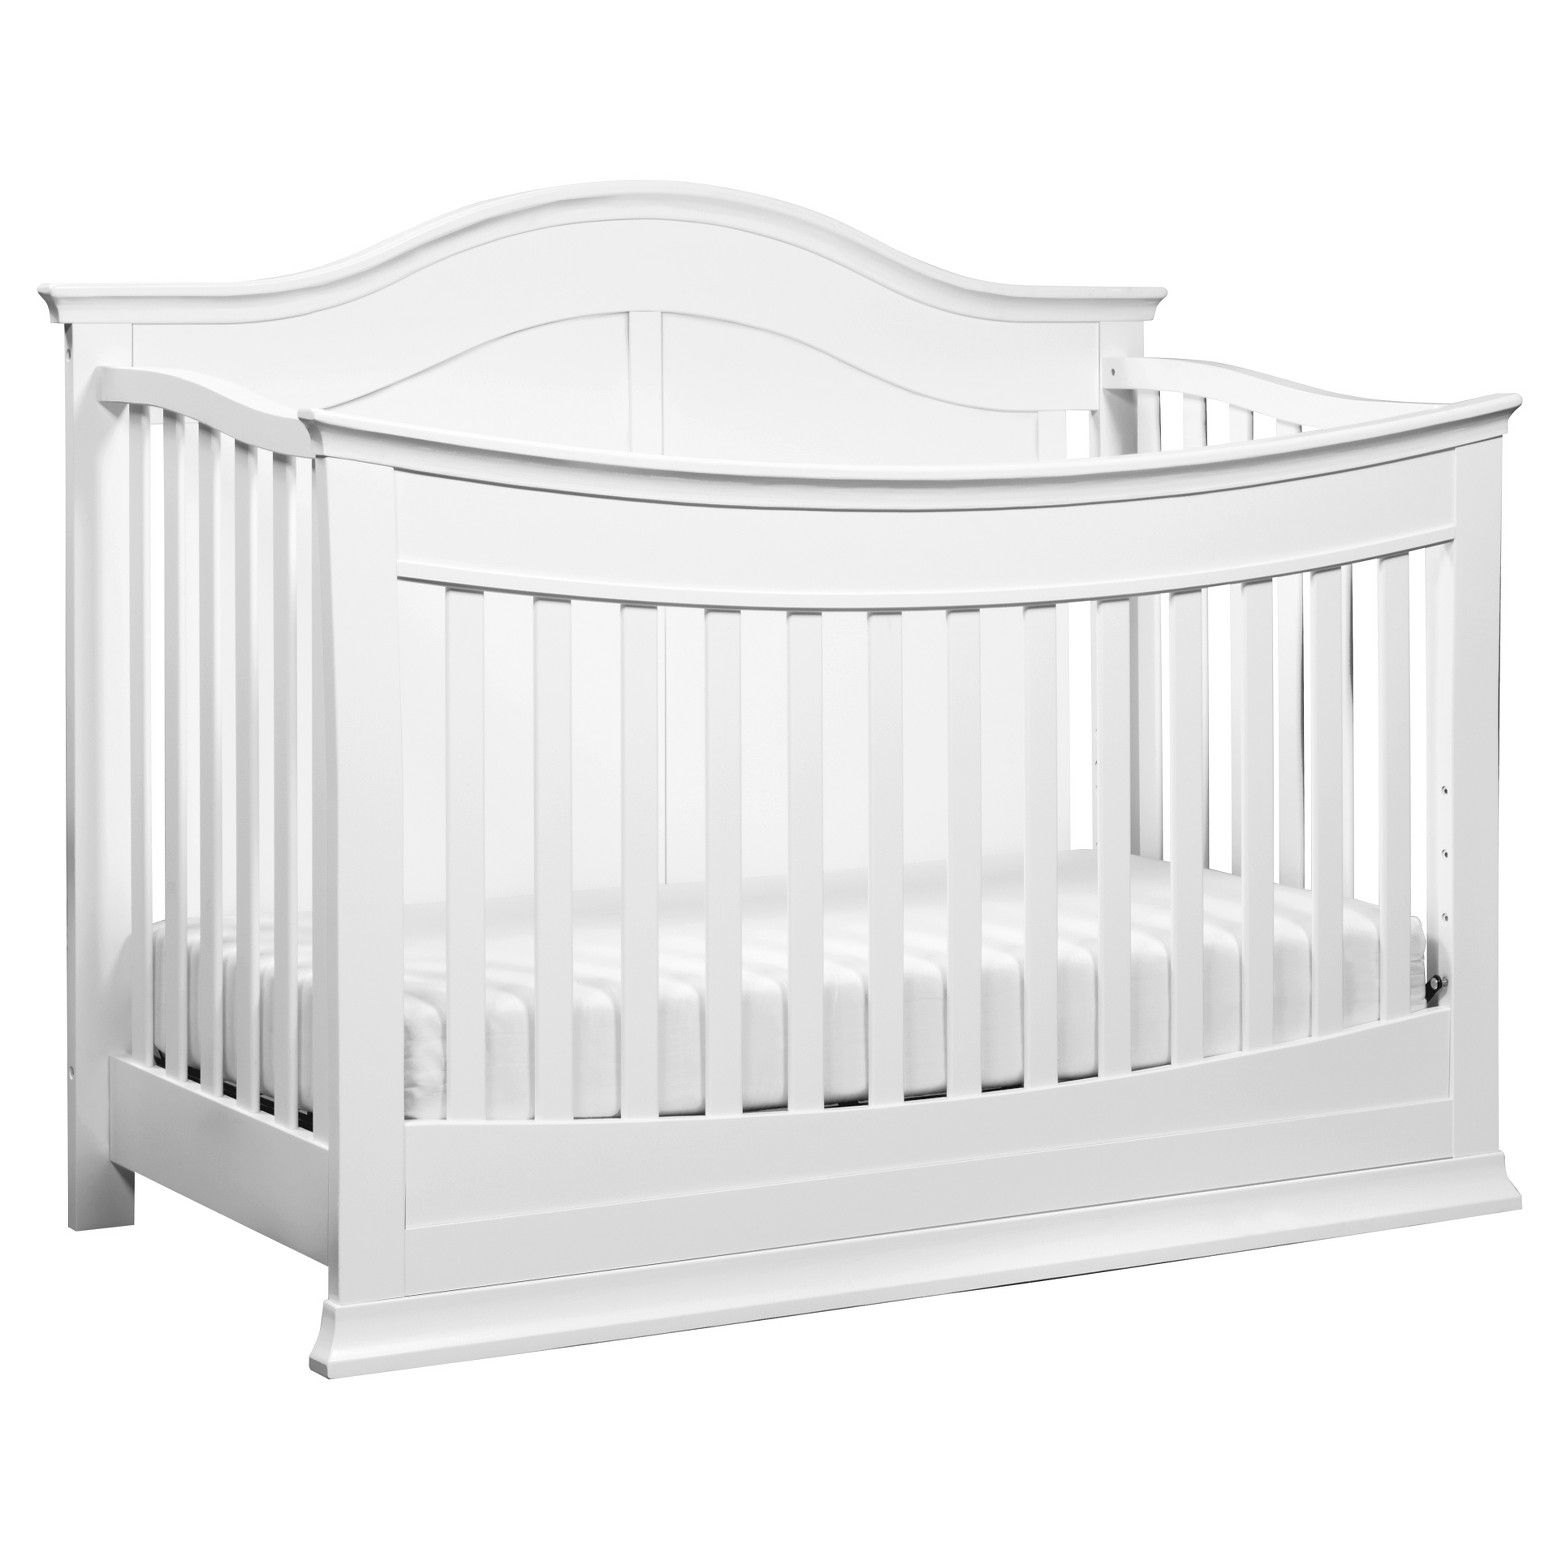 DaVinci Meadow 4in1 Convertible Crib with Toddler Rail